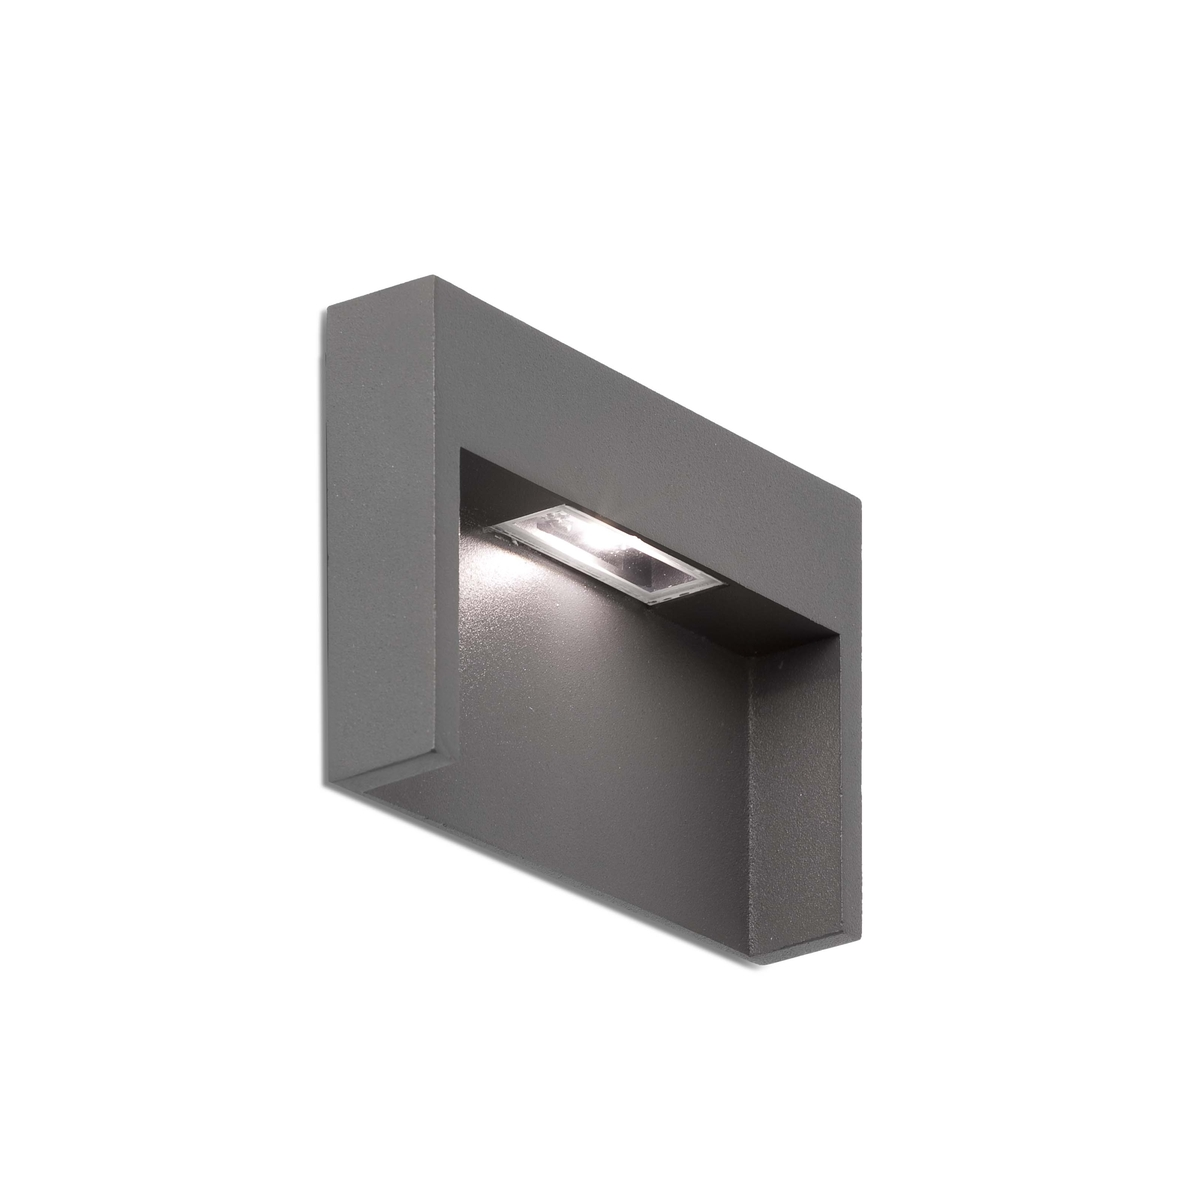 Applique Exterieur Encastrable Mur Lampe Exterieur Encastrable Lampe D Ext Rieur Led Holly